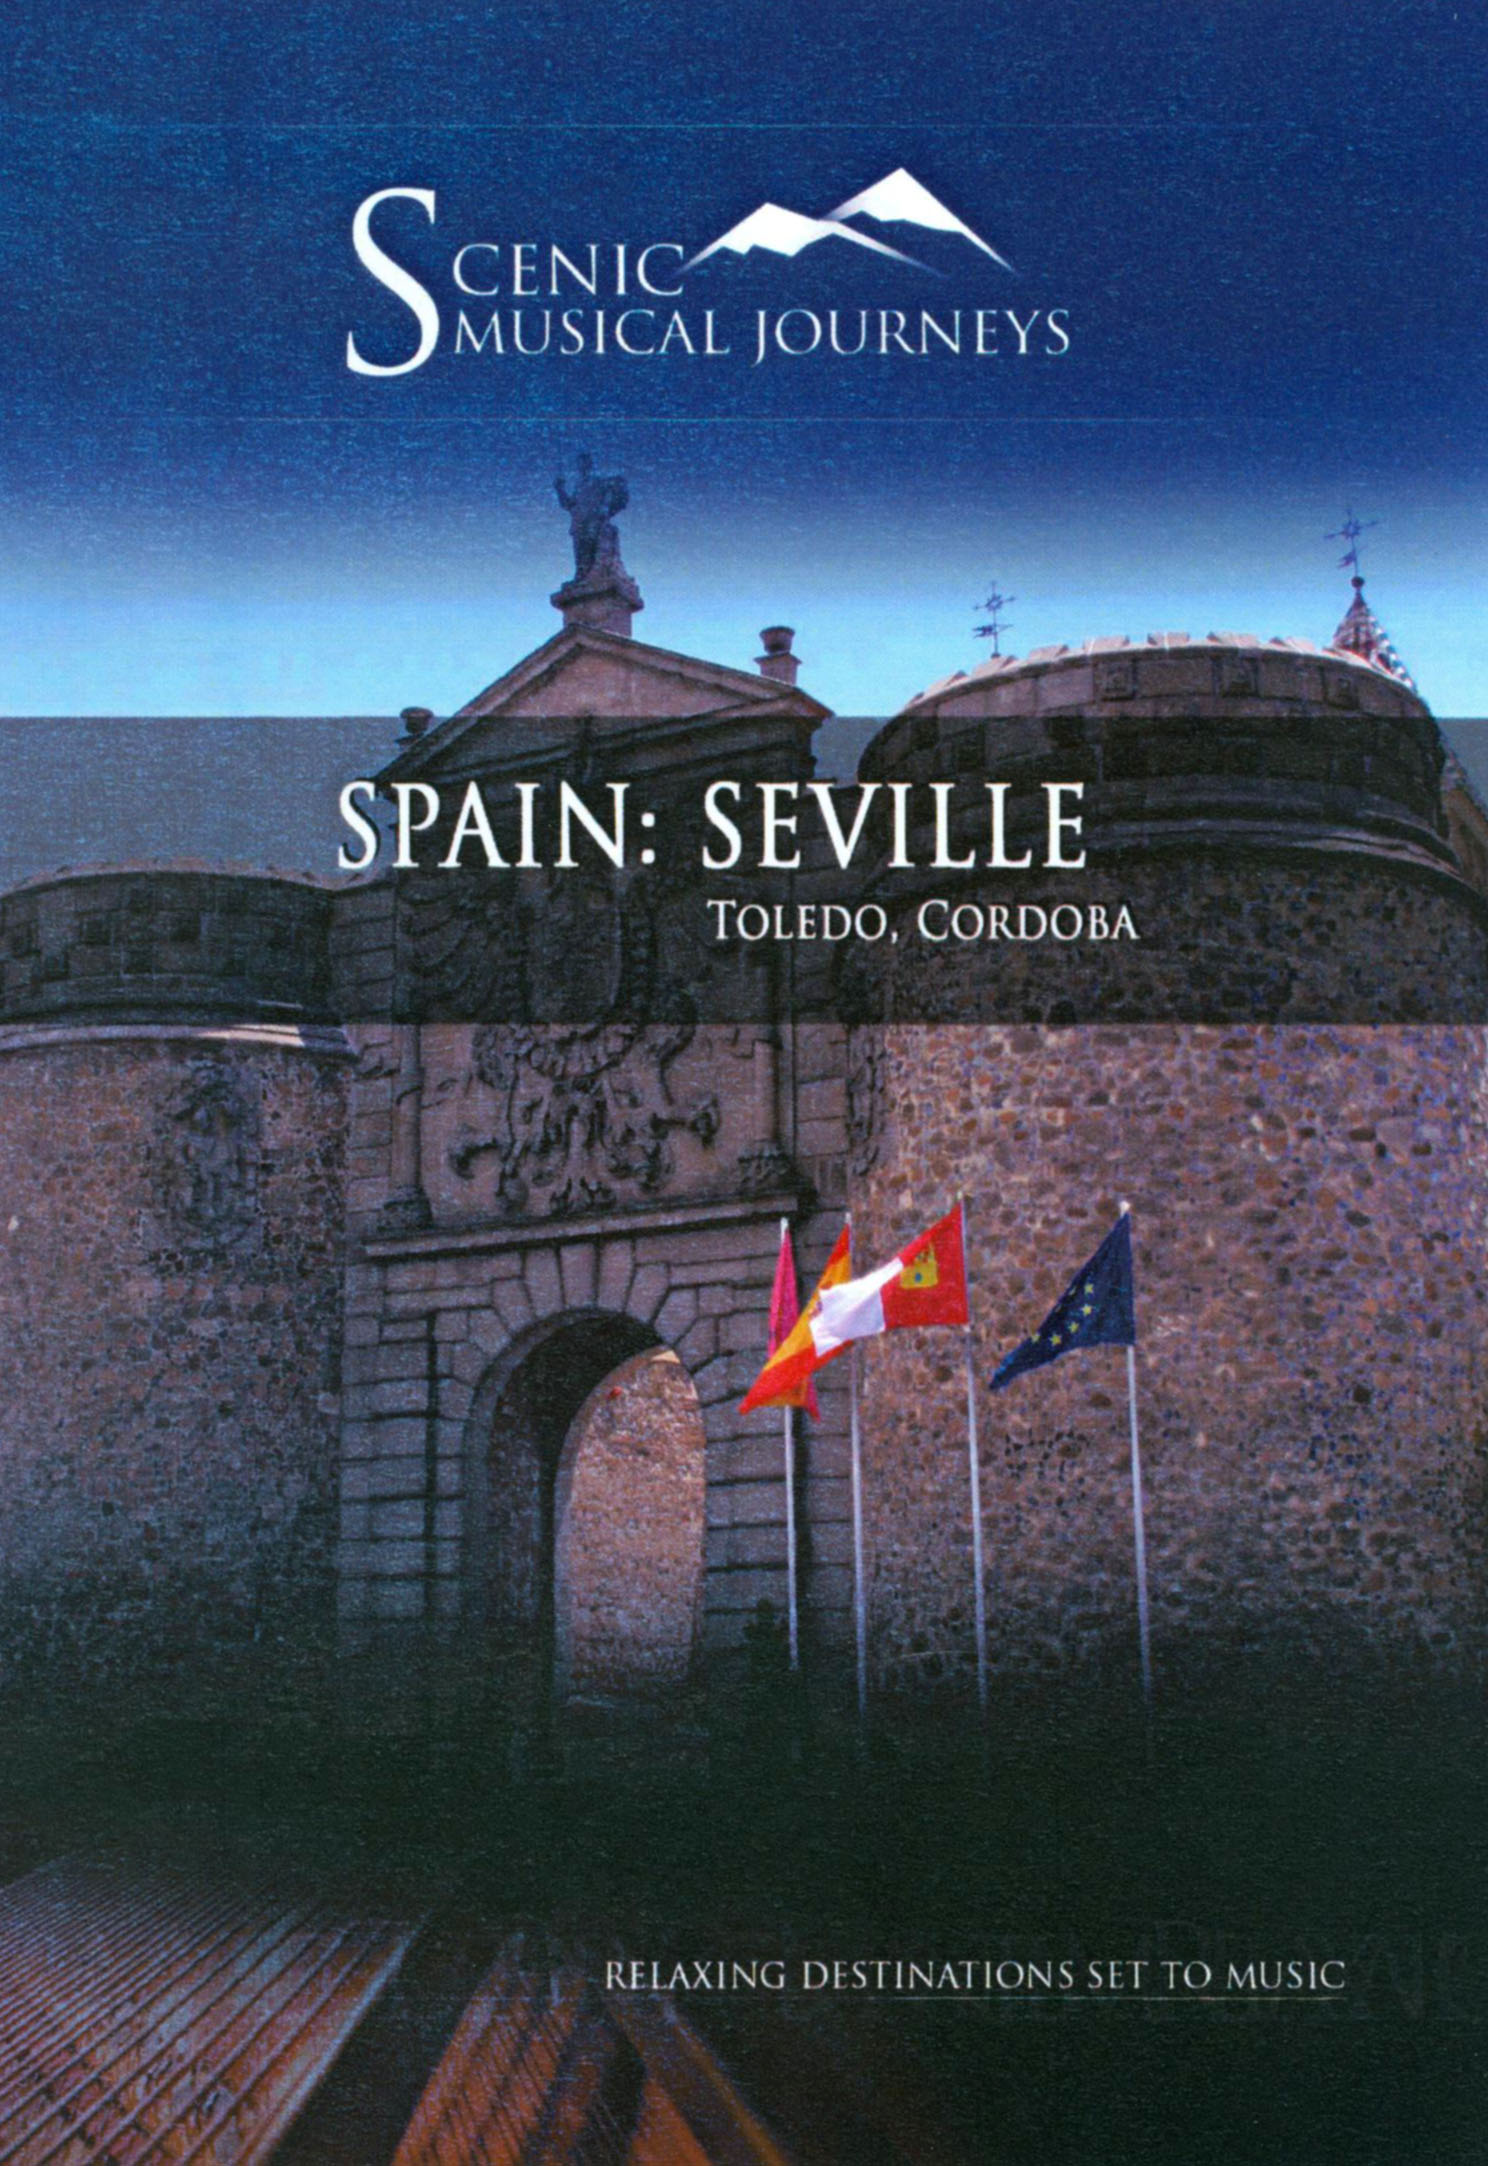 Scenic Musical Journeys: Spain: Seville - Toledo, Cordoba